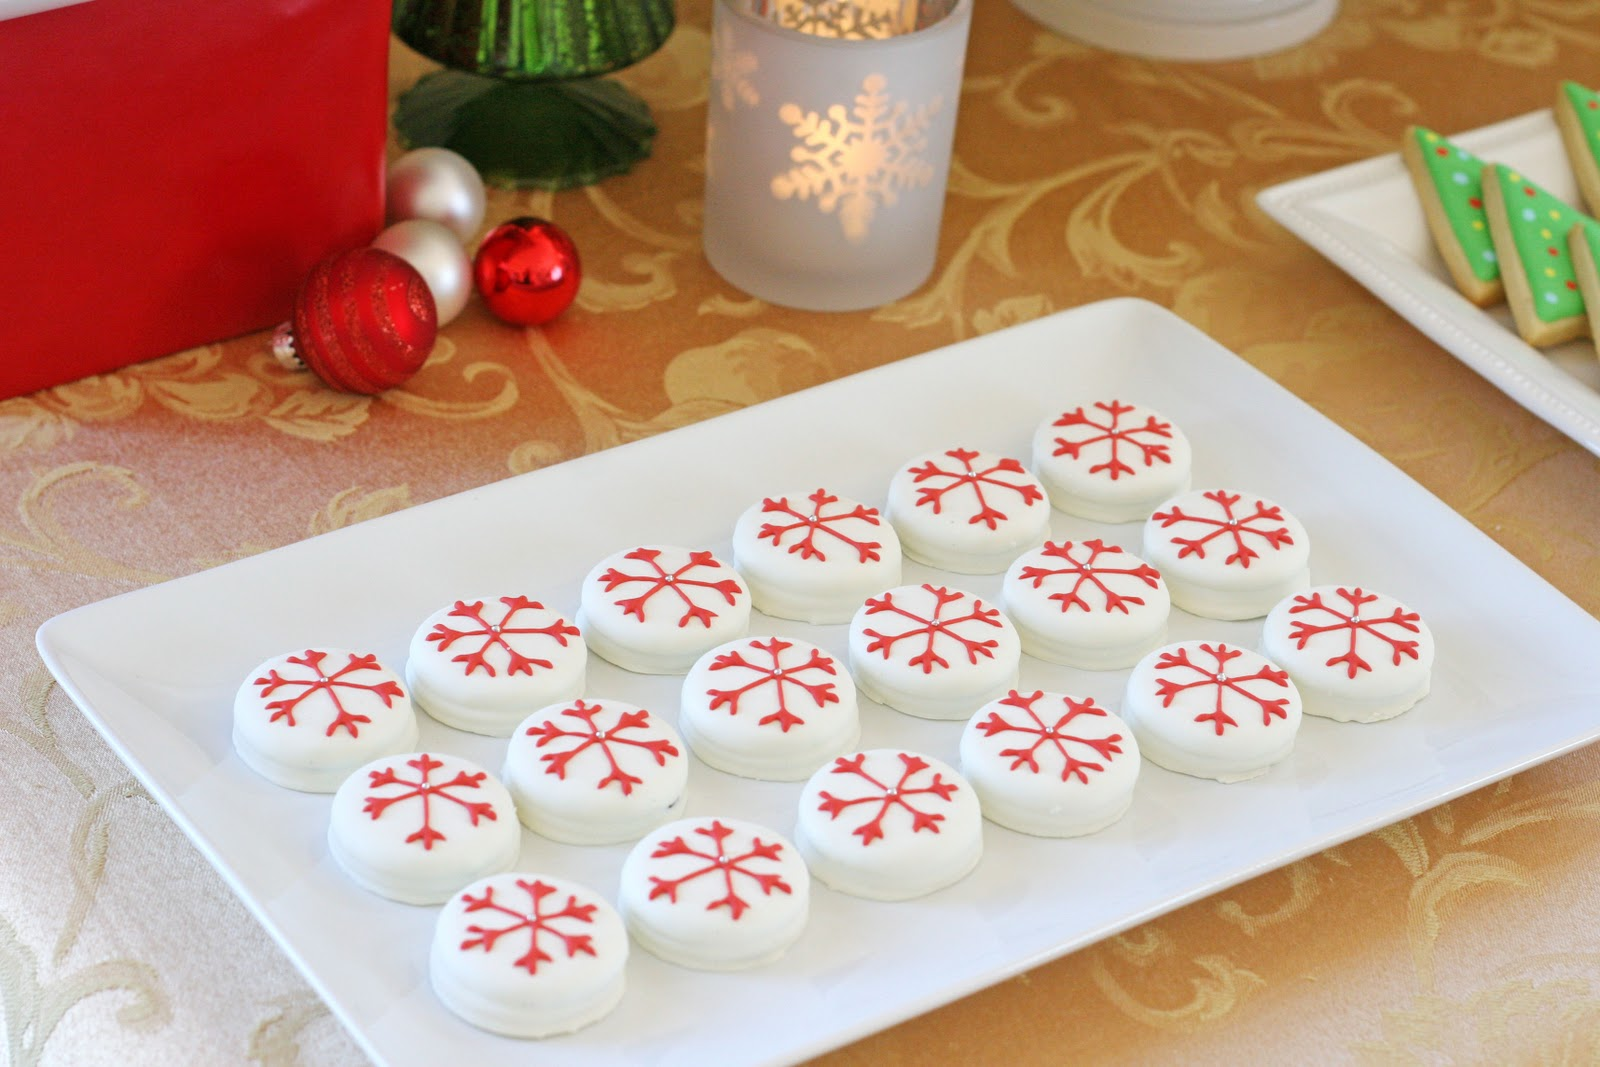 Christmas dessert table decoration ideas - Classic Holiday Dessert Table